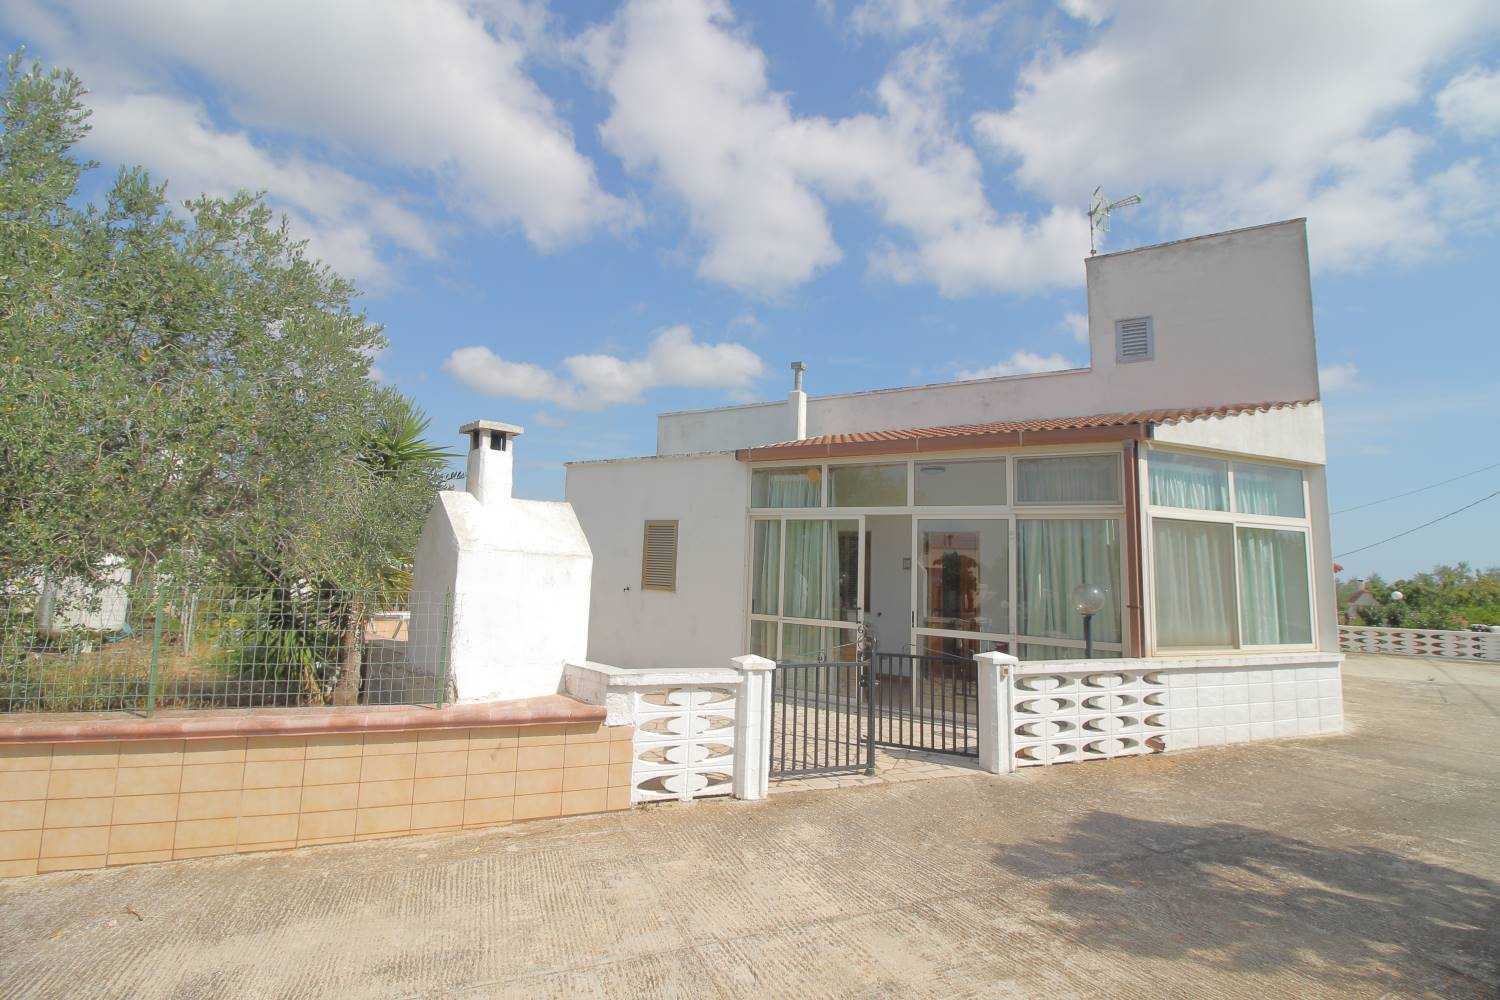 MONOPOLI, Apartment for sale of 70 Sq. mt., Habitable, Heating Individual heating system, Energetic class: G, Epi: 165 kwh/m2 year, placed at Ground, composed by: 3 Rooms, Separate kitchen, , 1